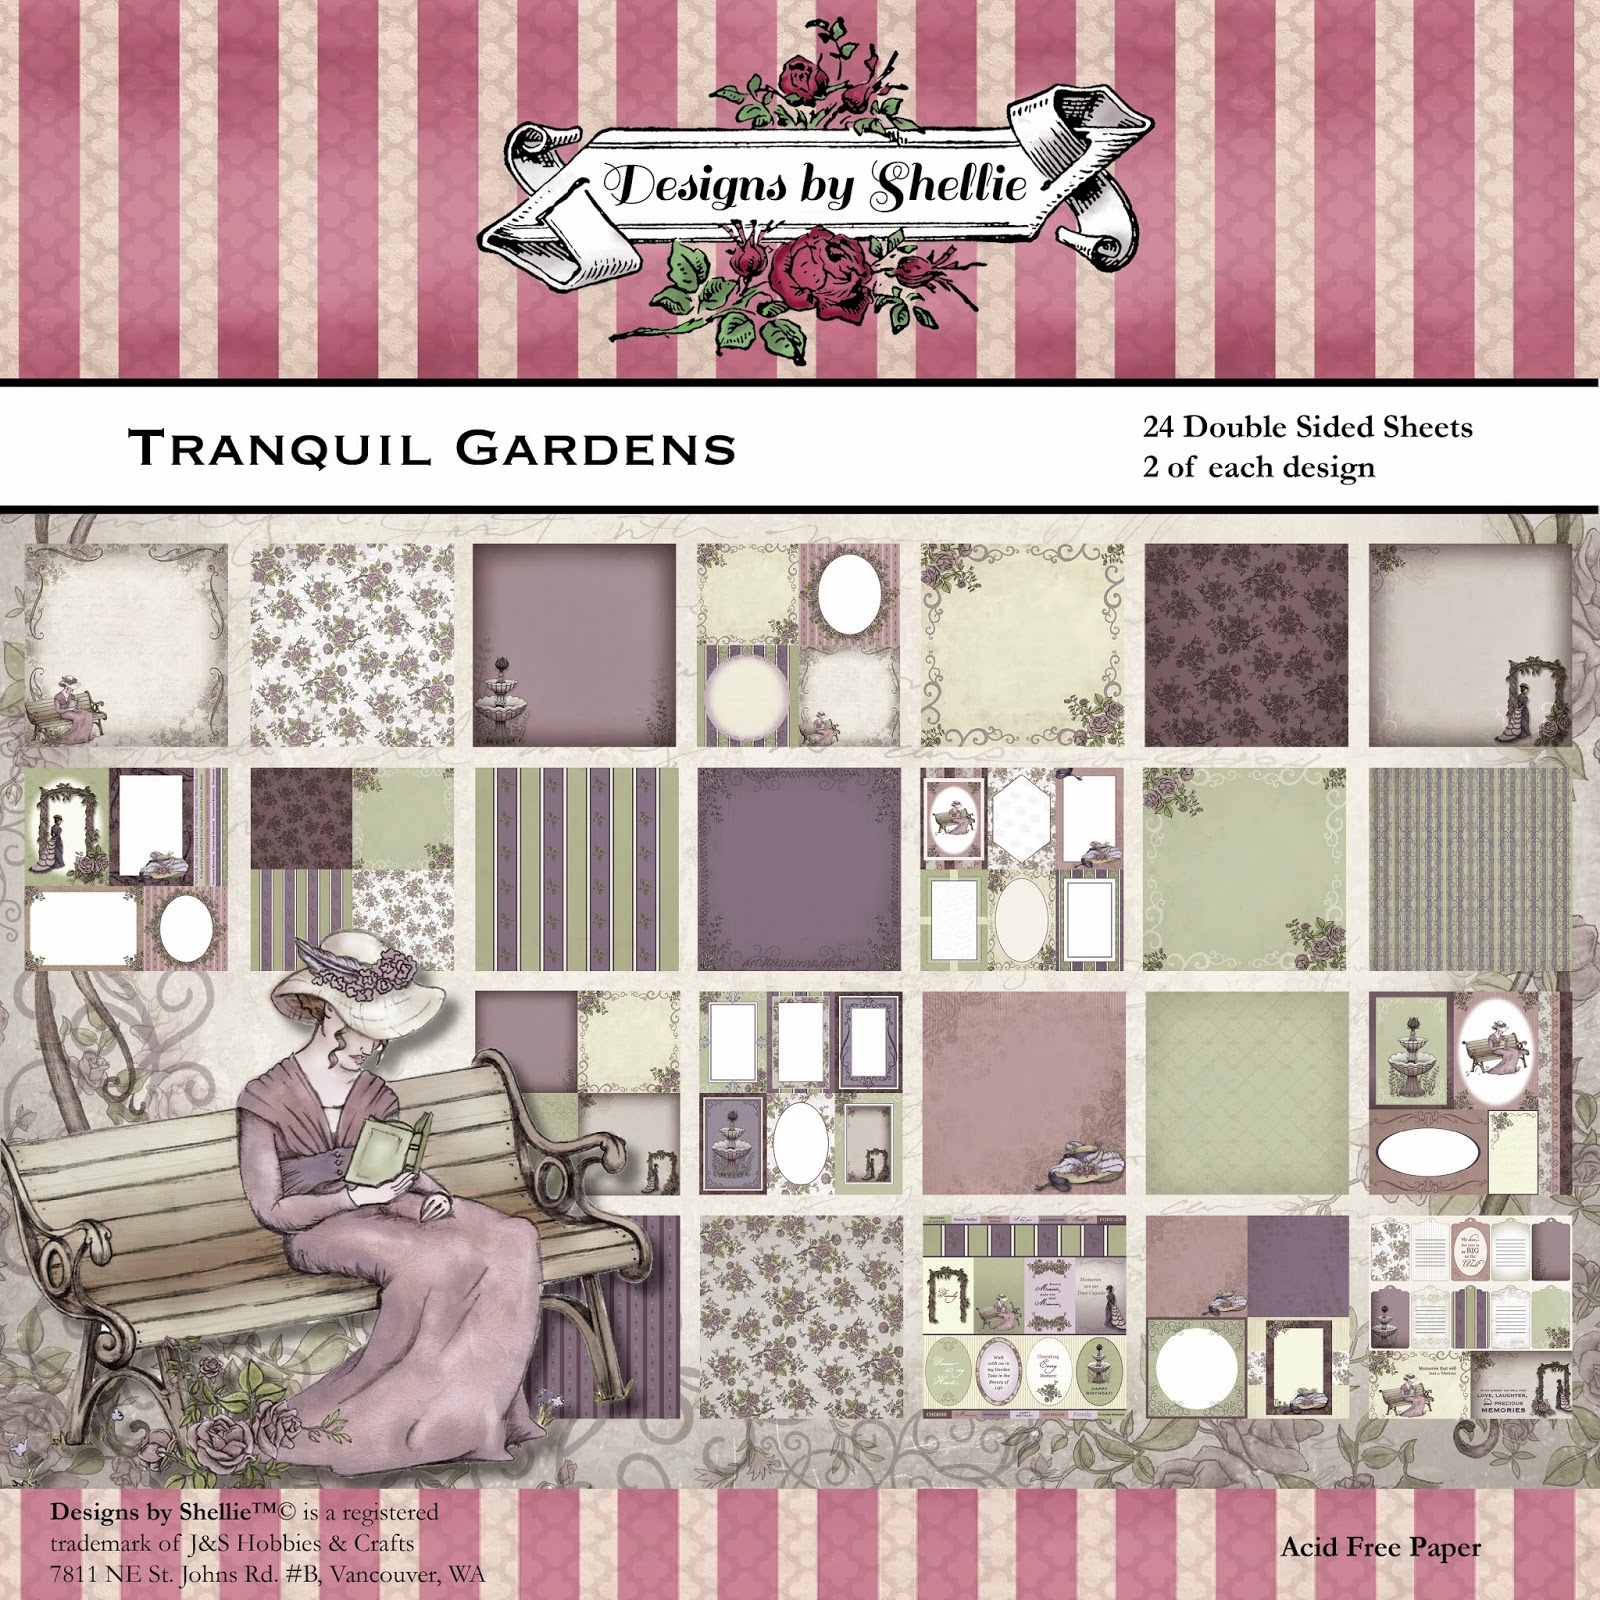 Designs by shellie designs by shellie tranquil garden 12 for Tranquil garden designs